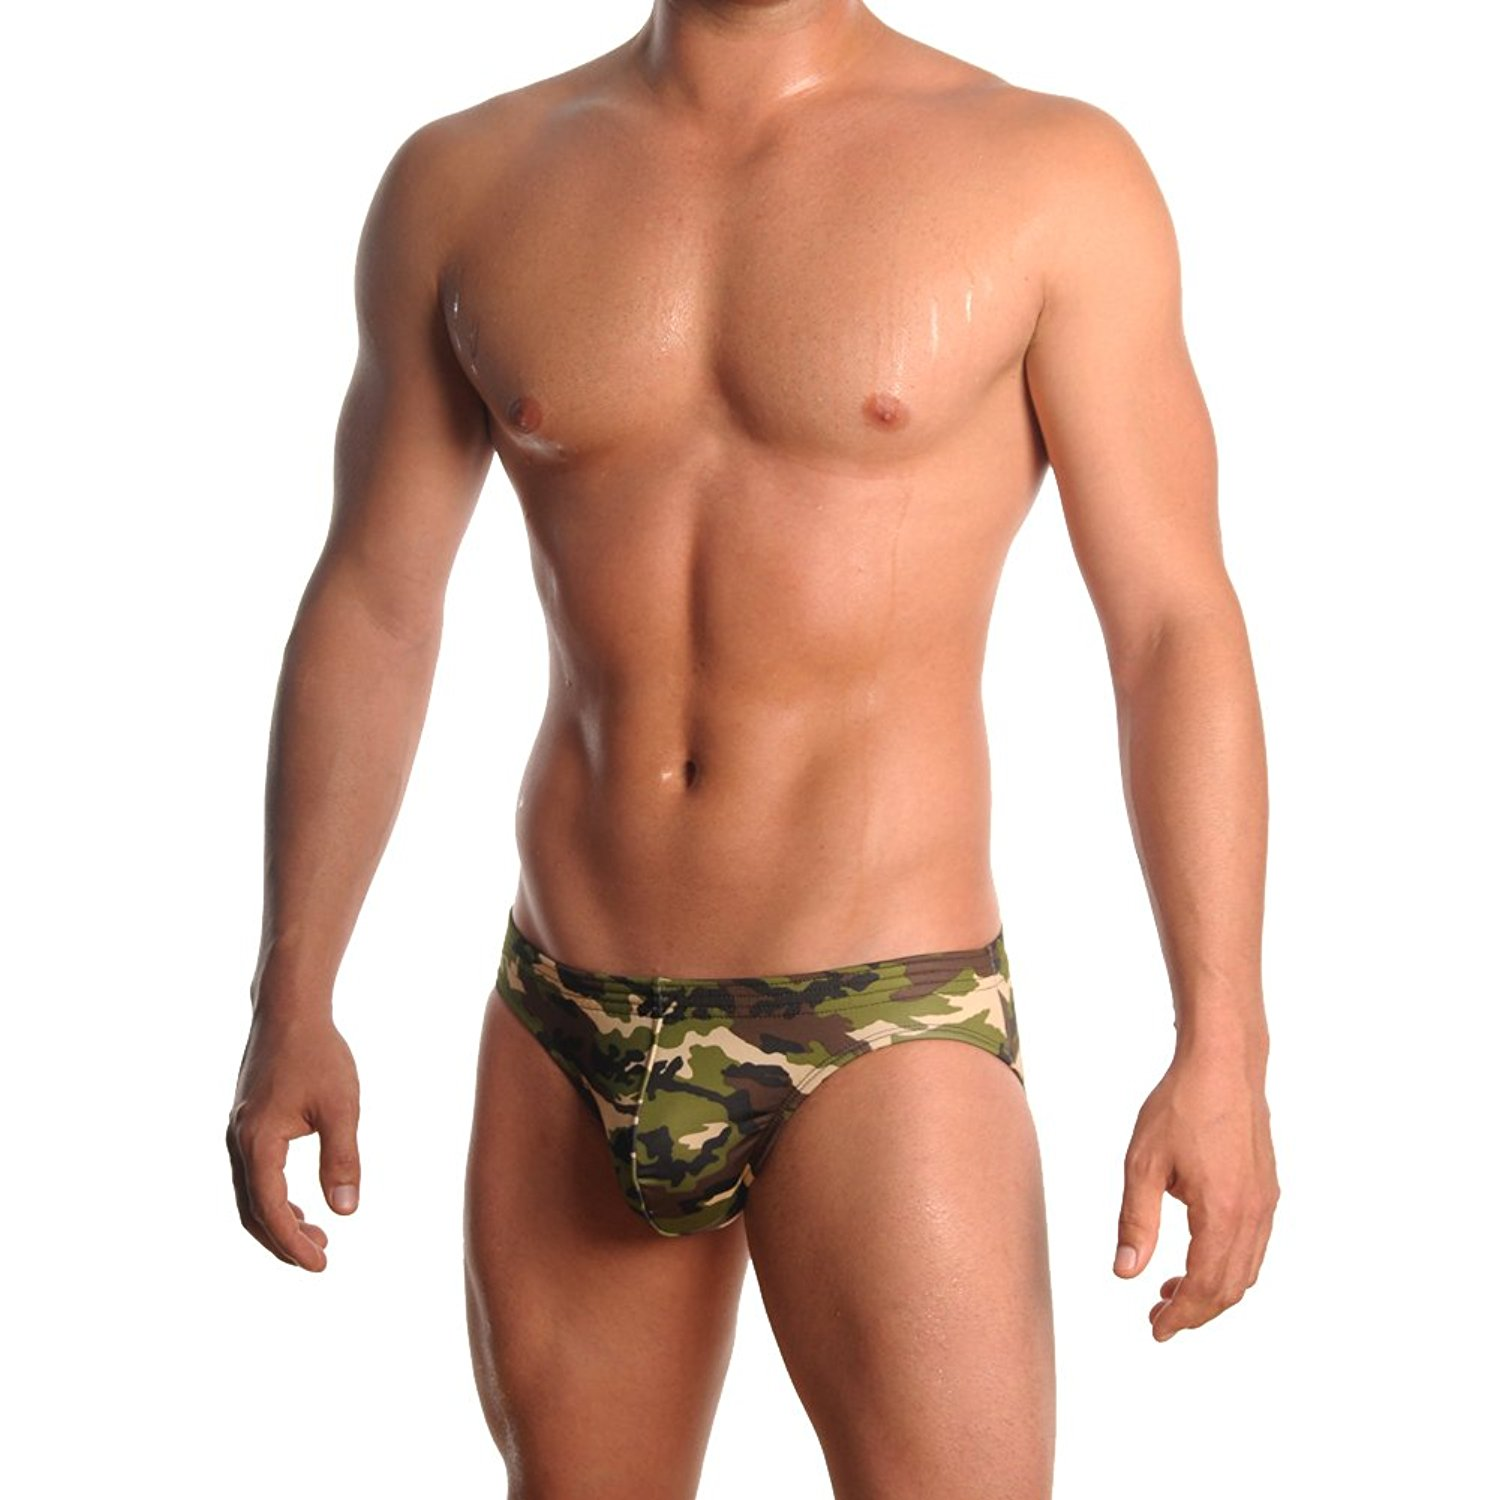 picture 5 of 5 mens print contour pouch bikini swimsuit by gary majdell sport x      rh   ebay